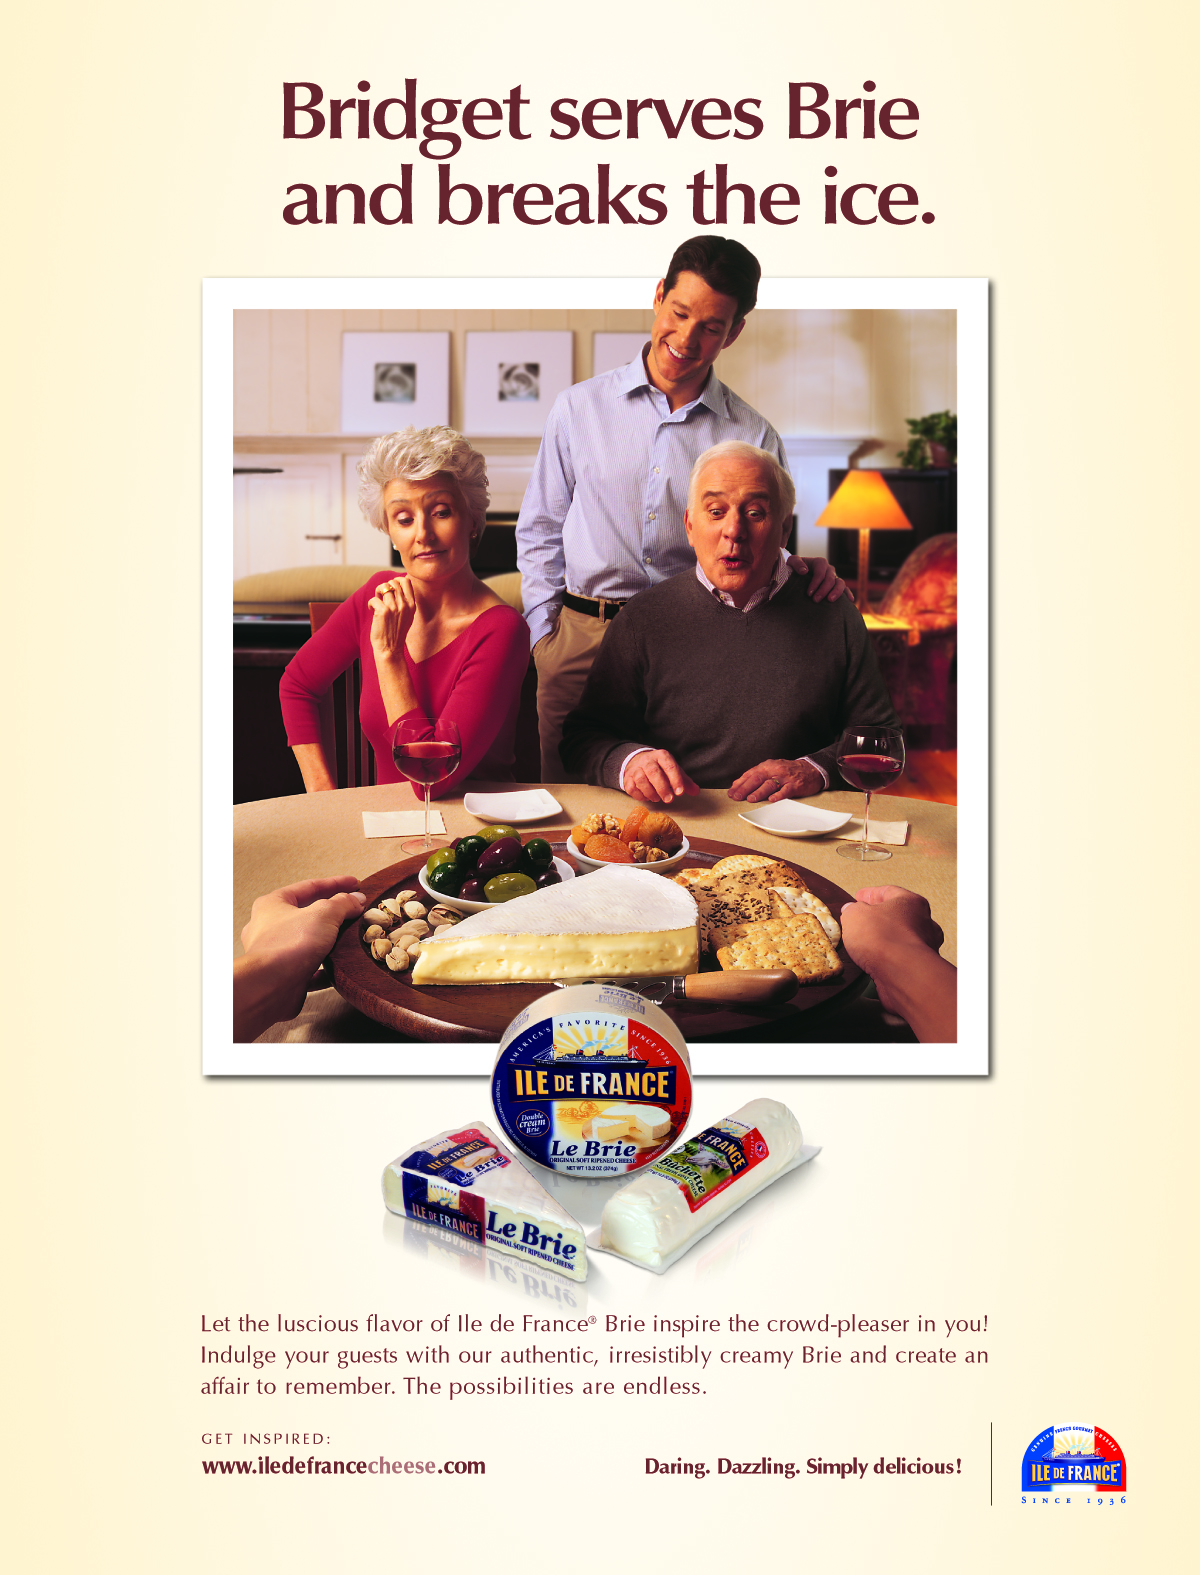 Product ad for Ile de France Cheese to position their products as an approachable alternative to  more common cheeses.